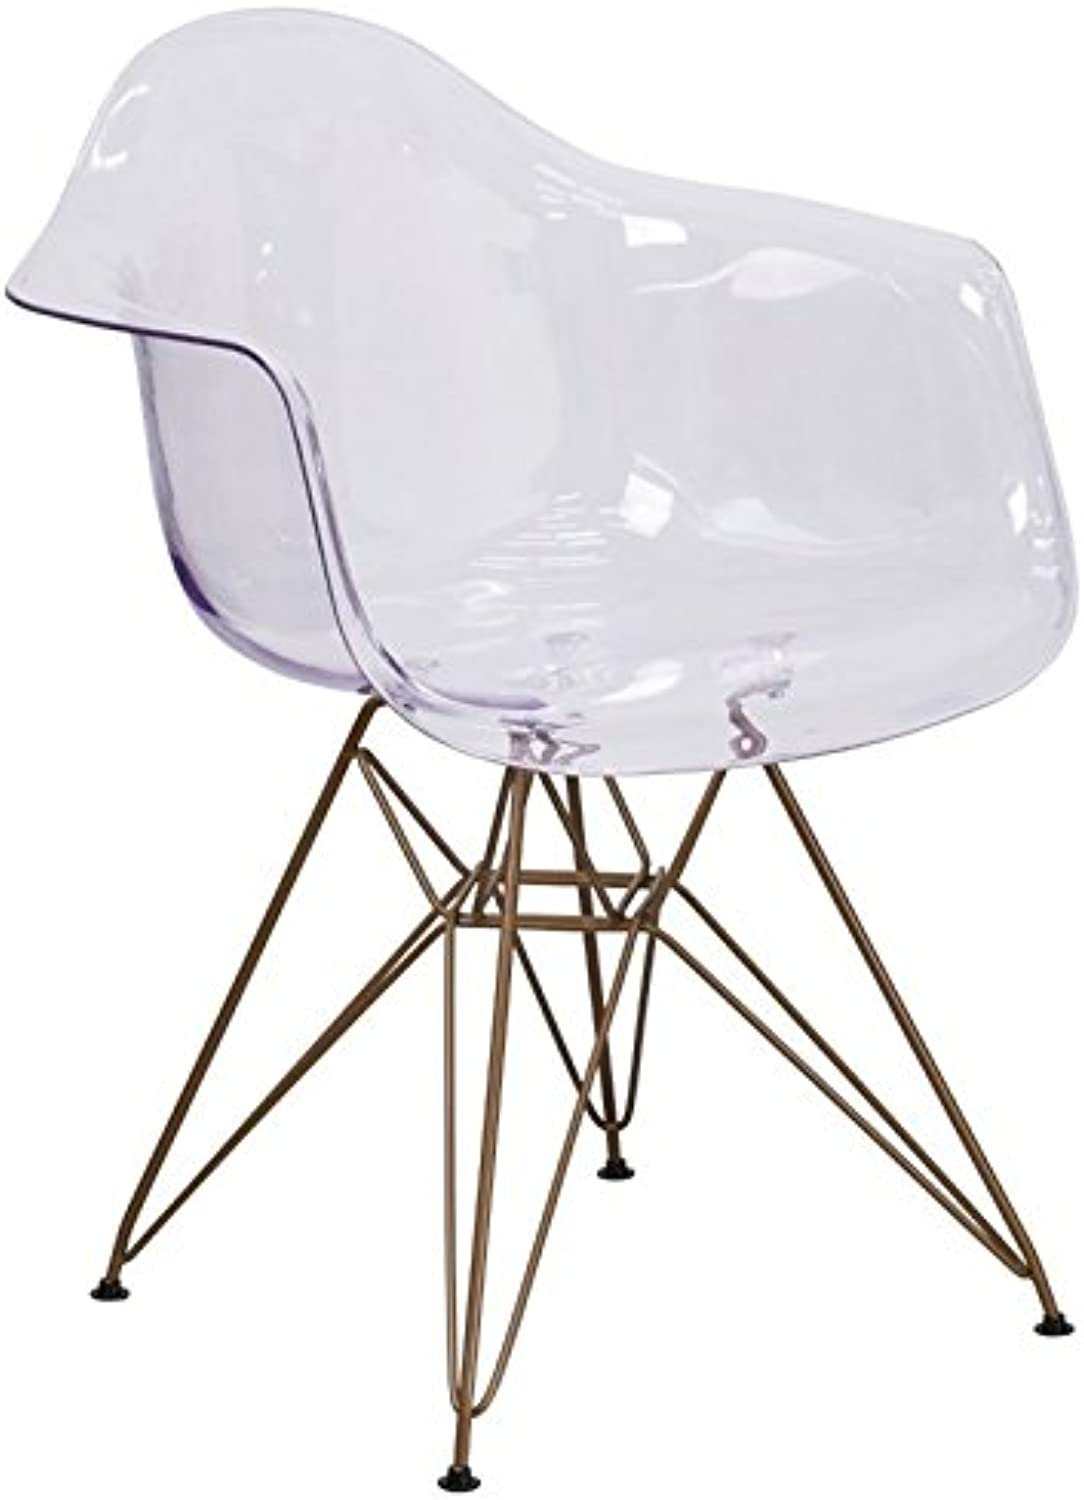 Pemberly Row Transparent Dining Chair